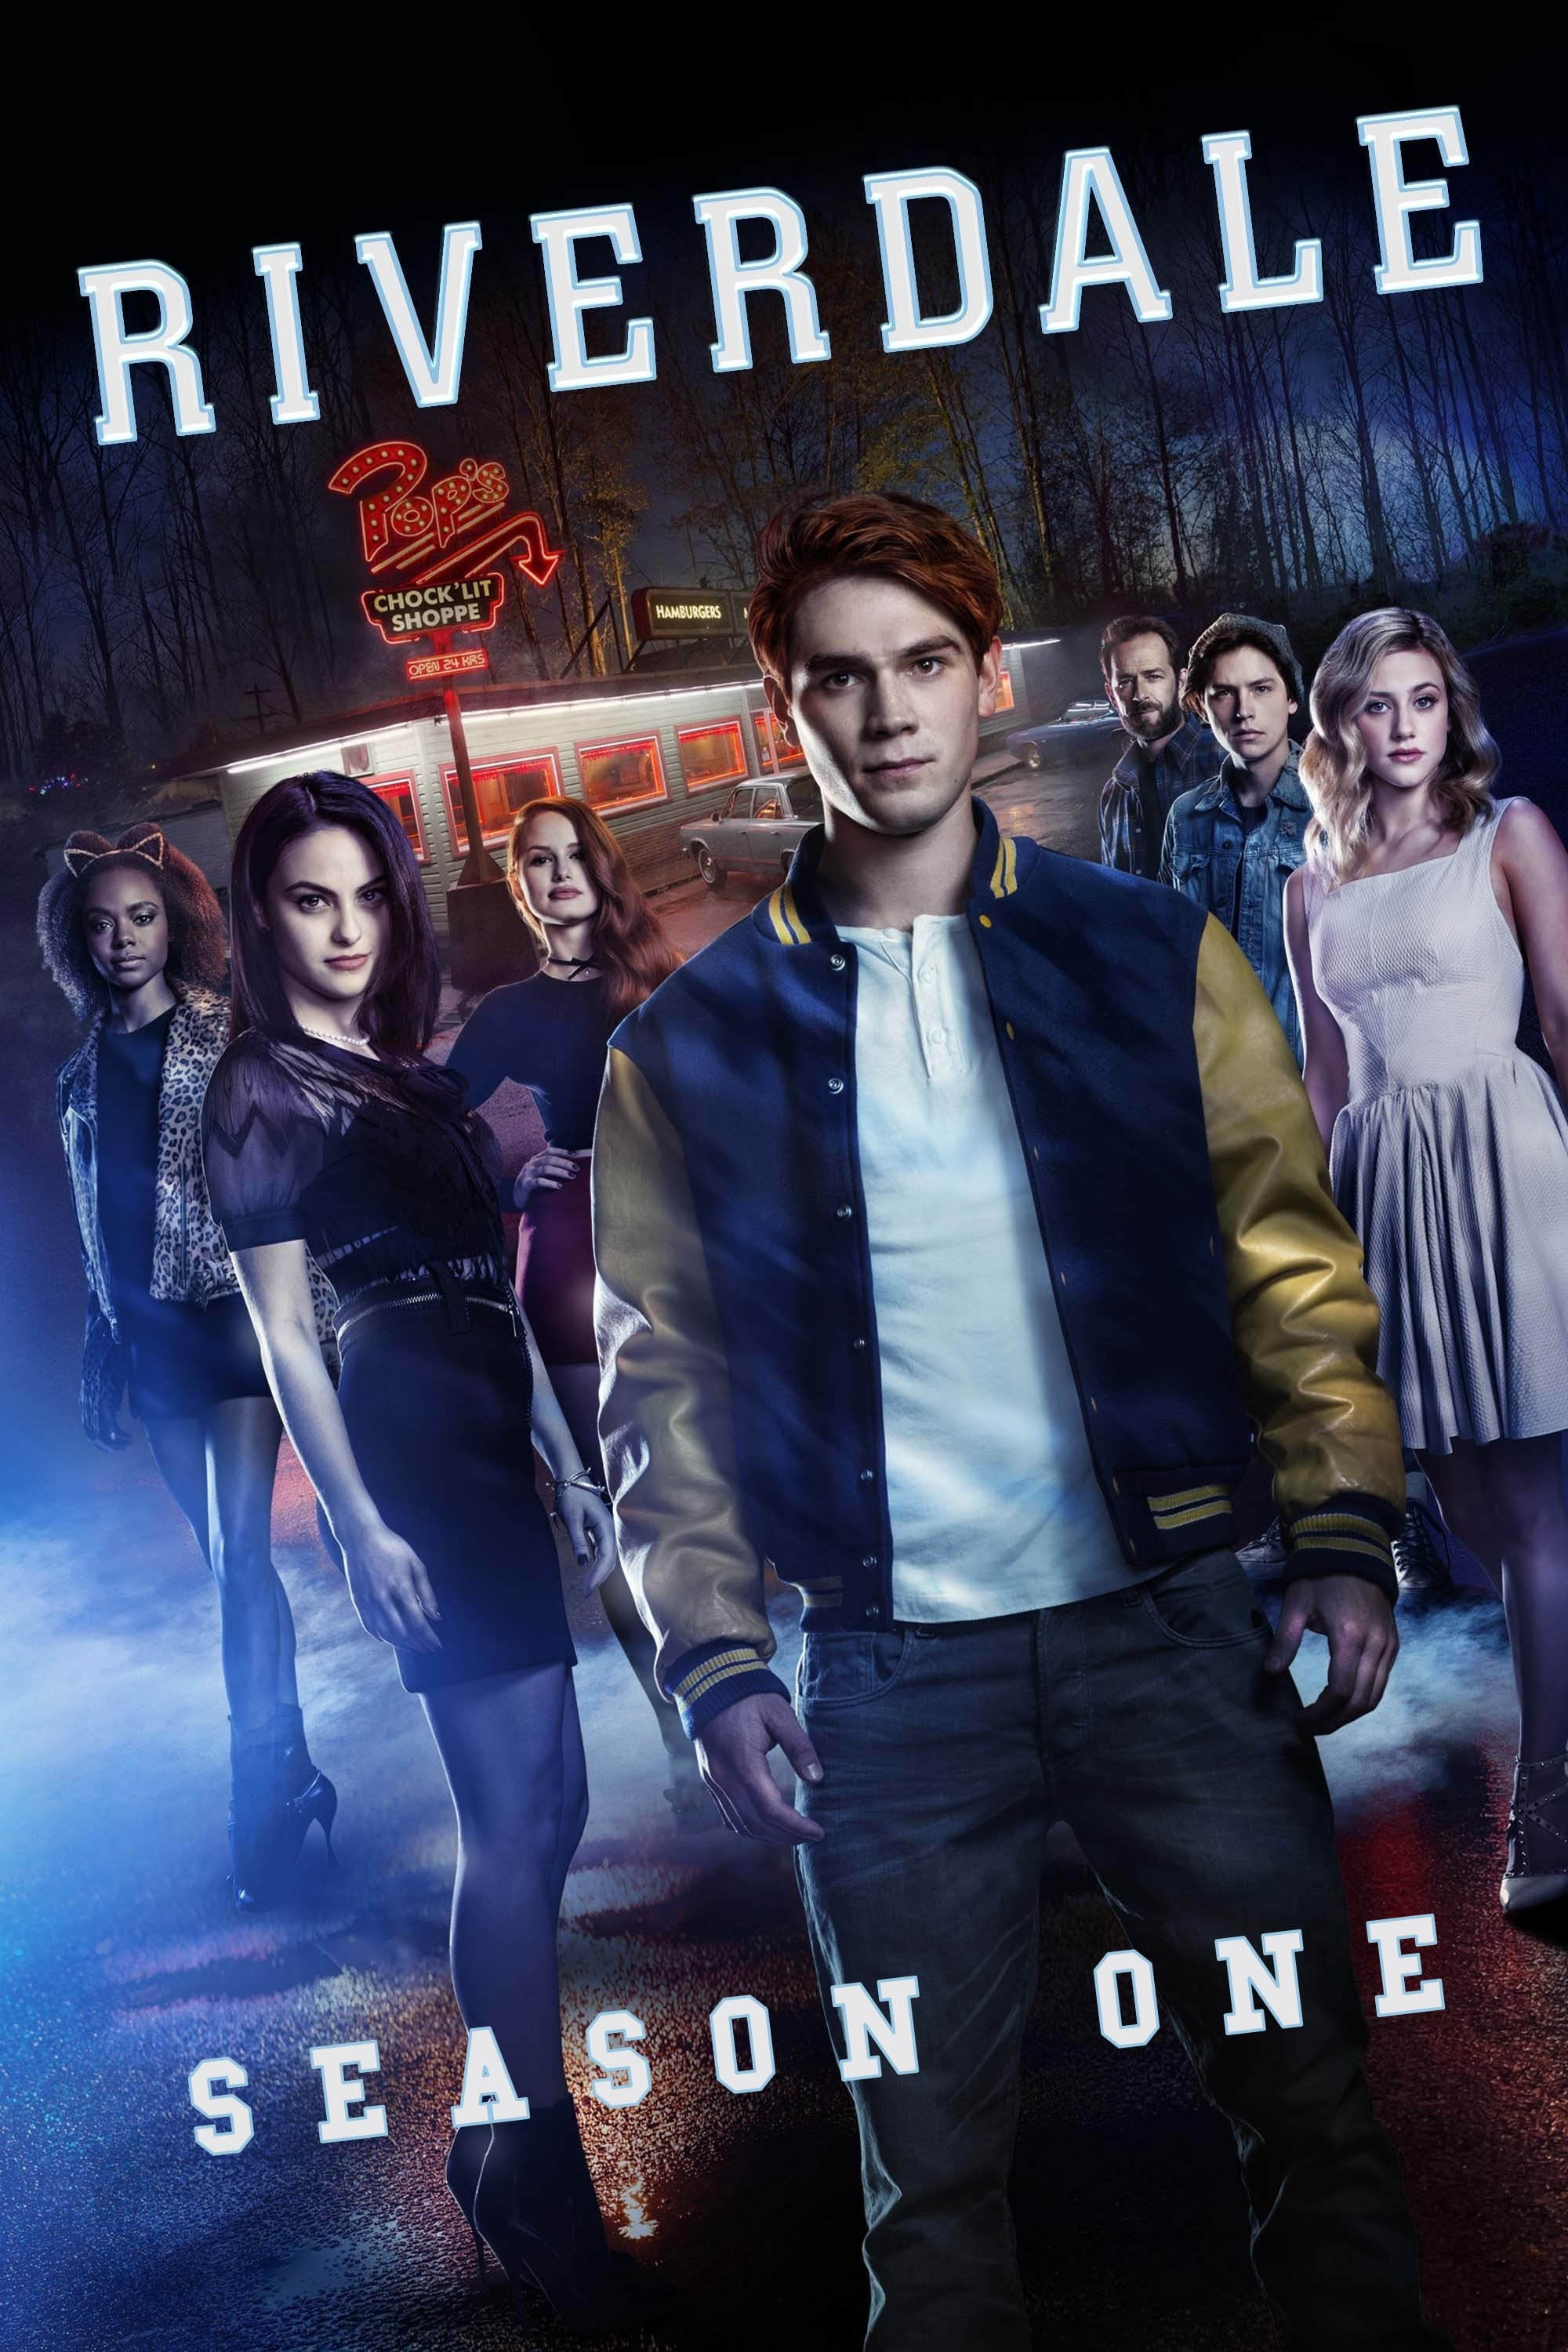 RIVERDALE SEASON 1 putlocker 4k